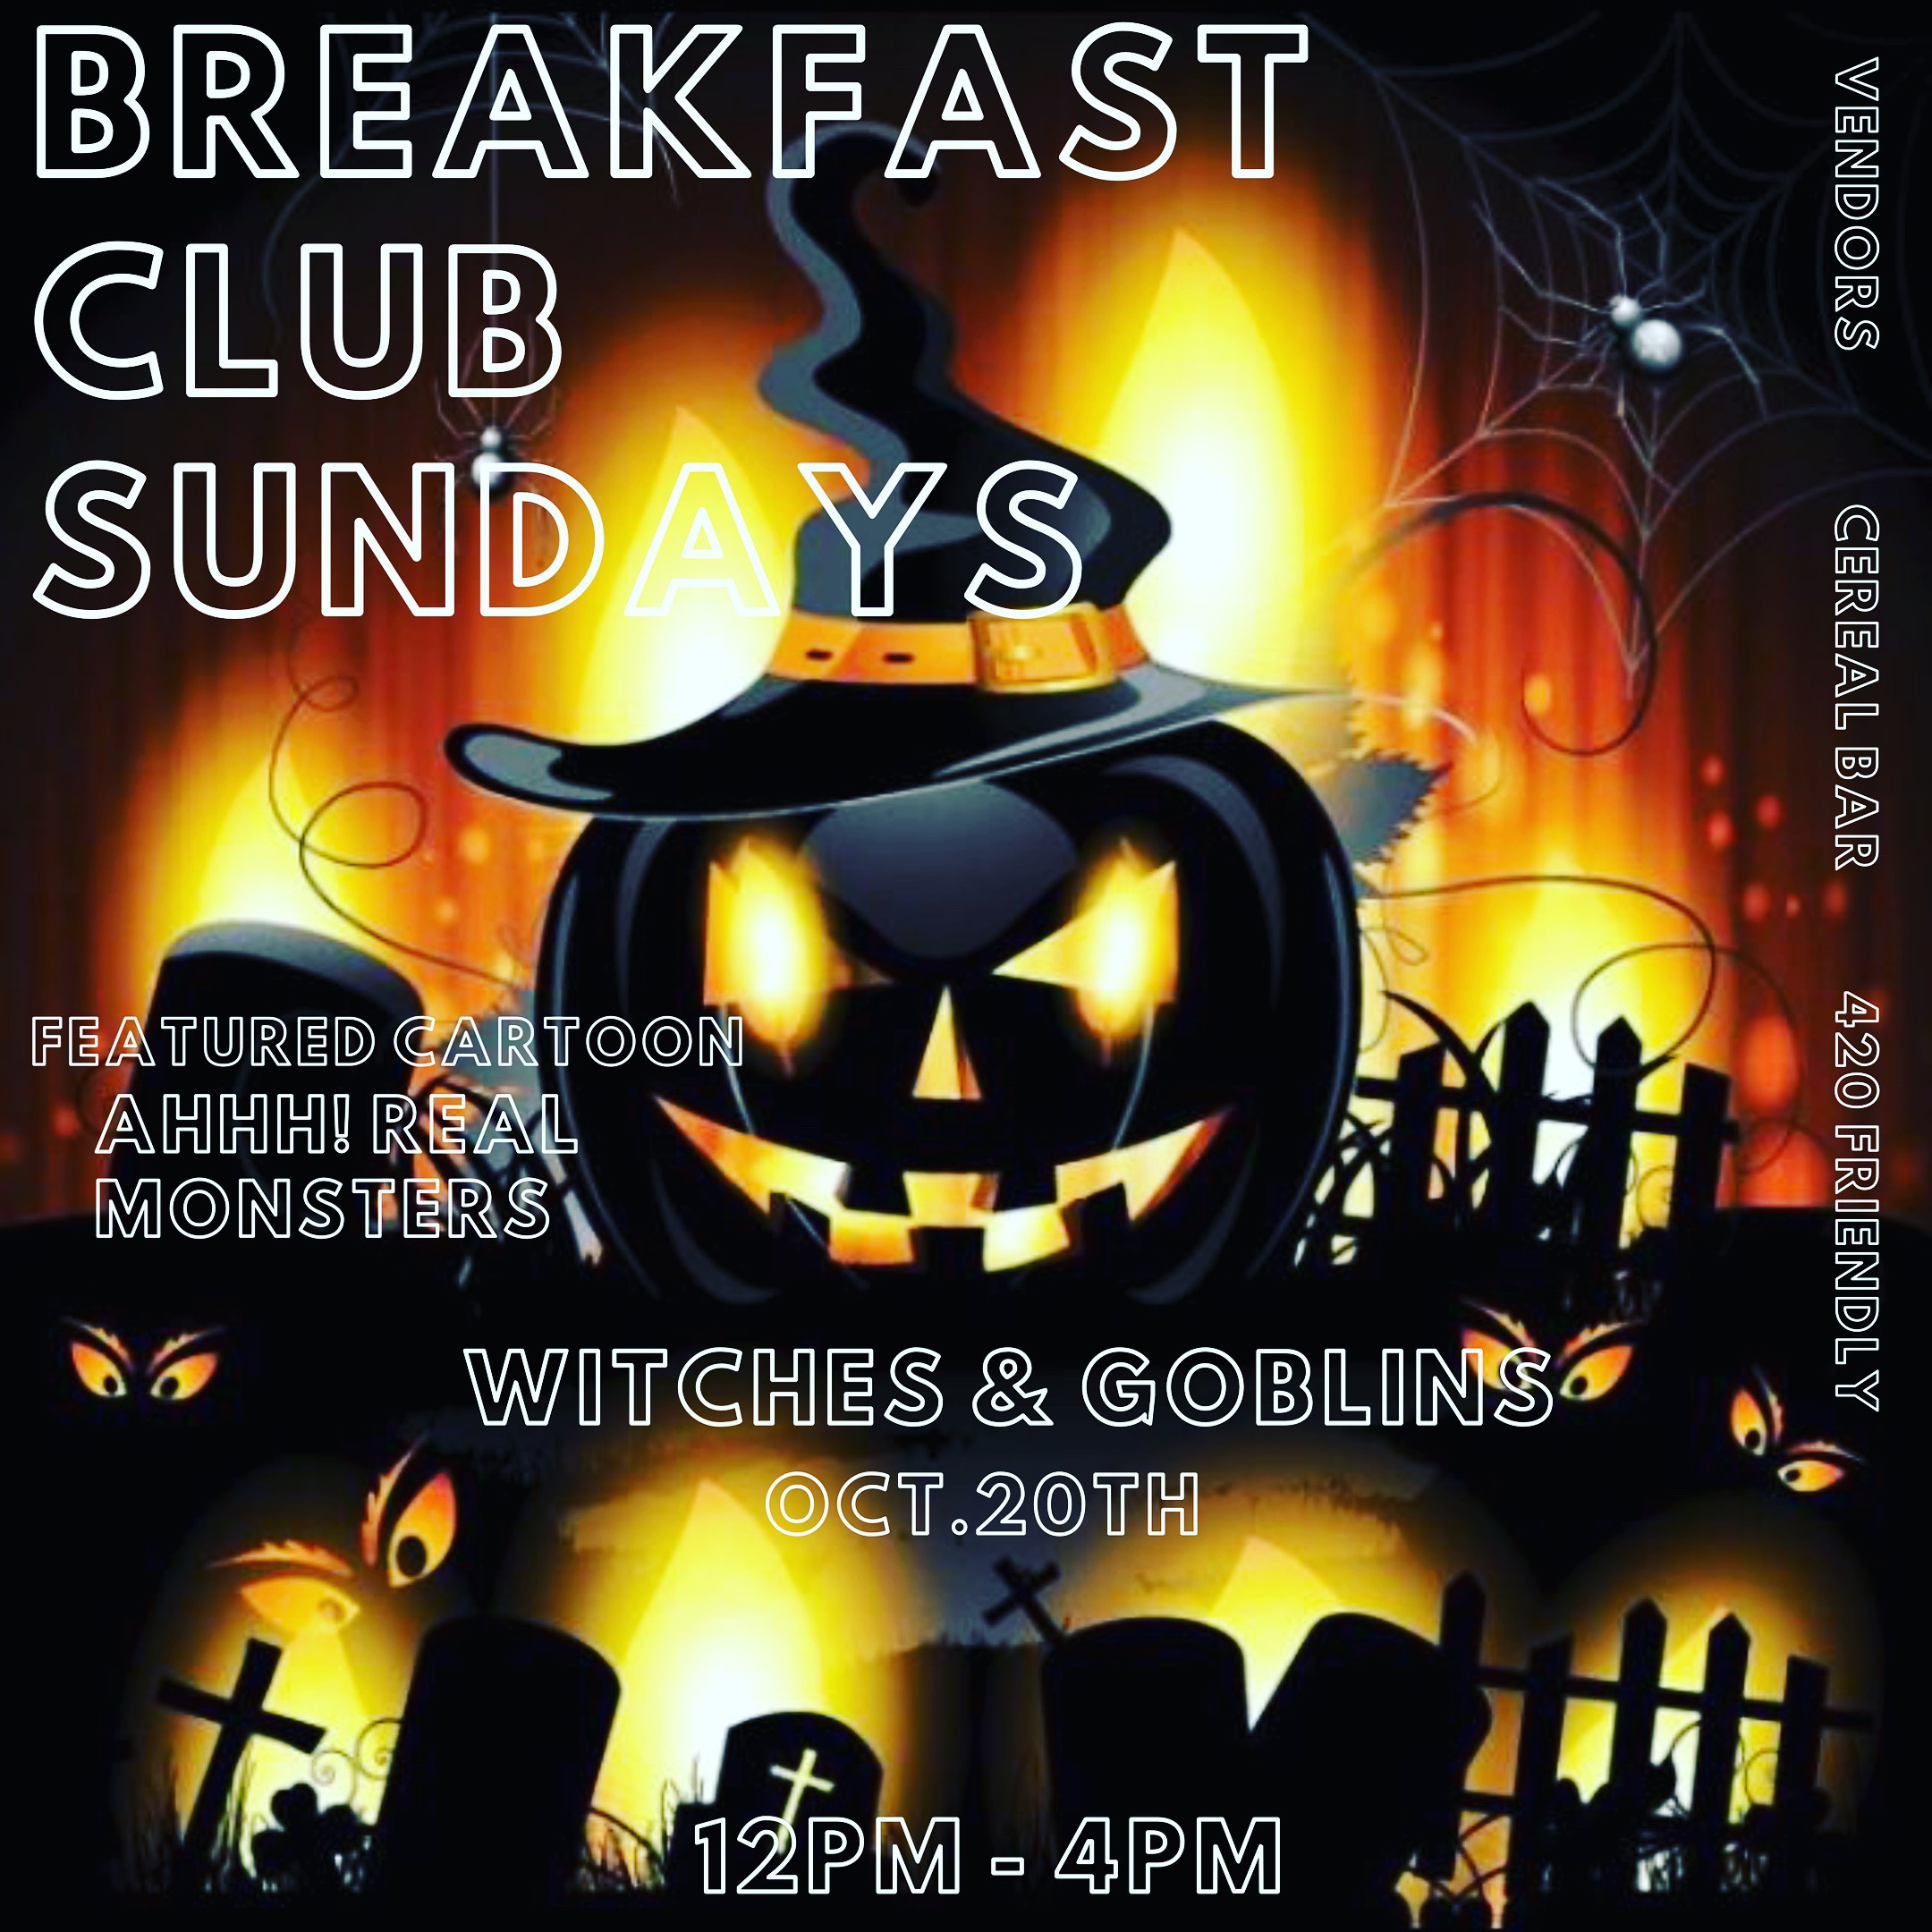 BreakfastClubSundays Witches and Goblins Sunday 10/20